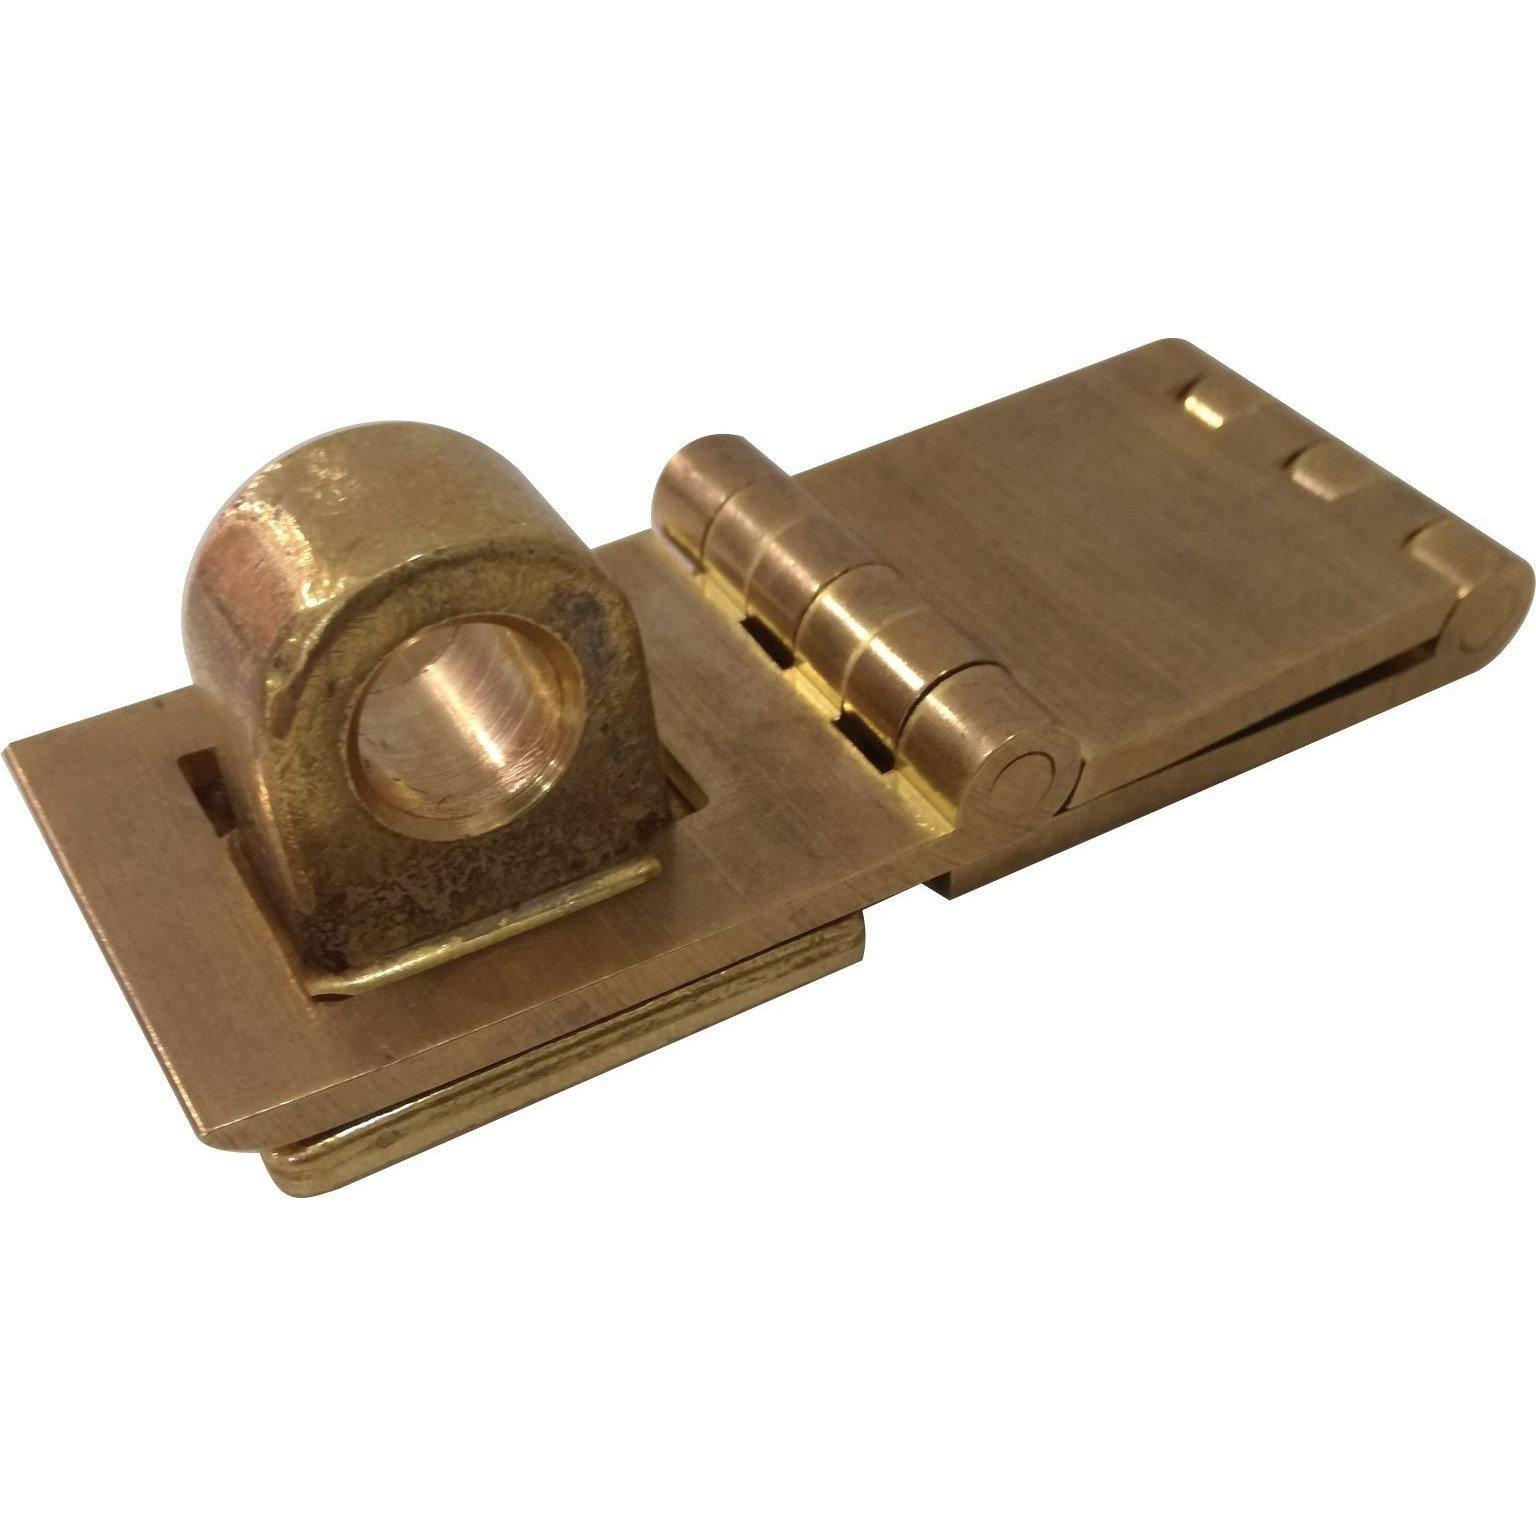 Double knuckle hasp and staple